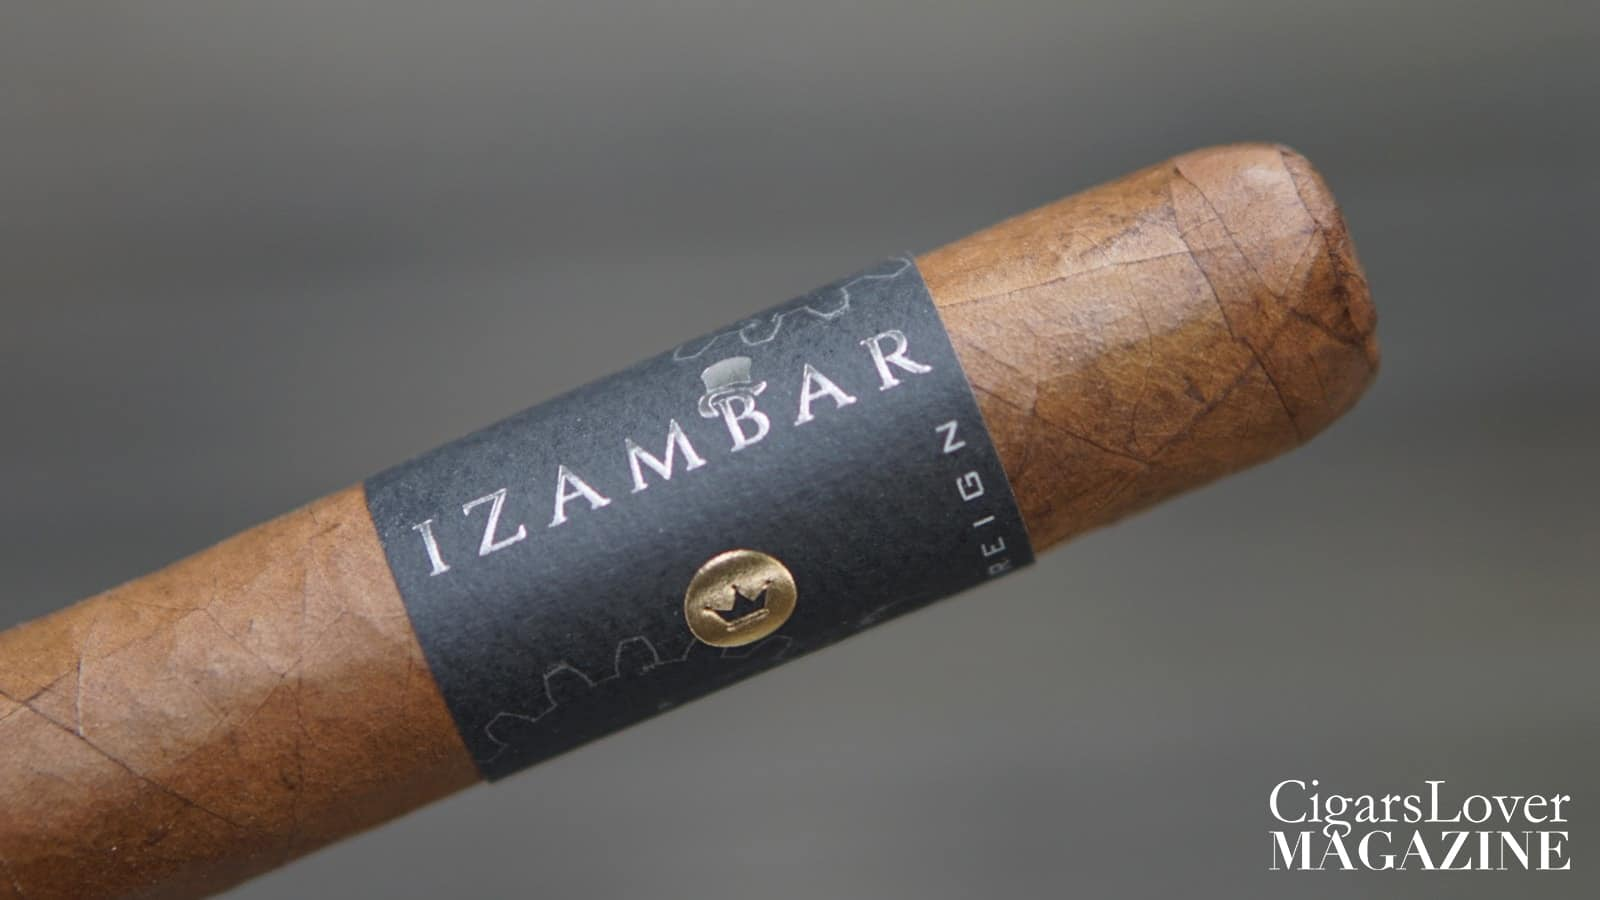 Izambar Sovereign